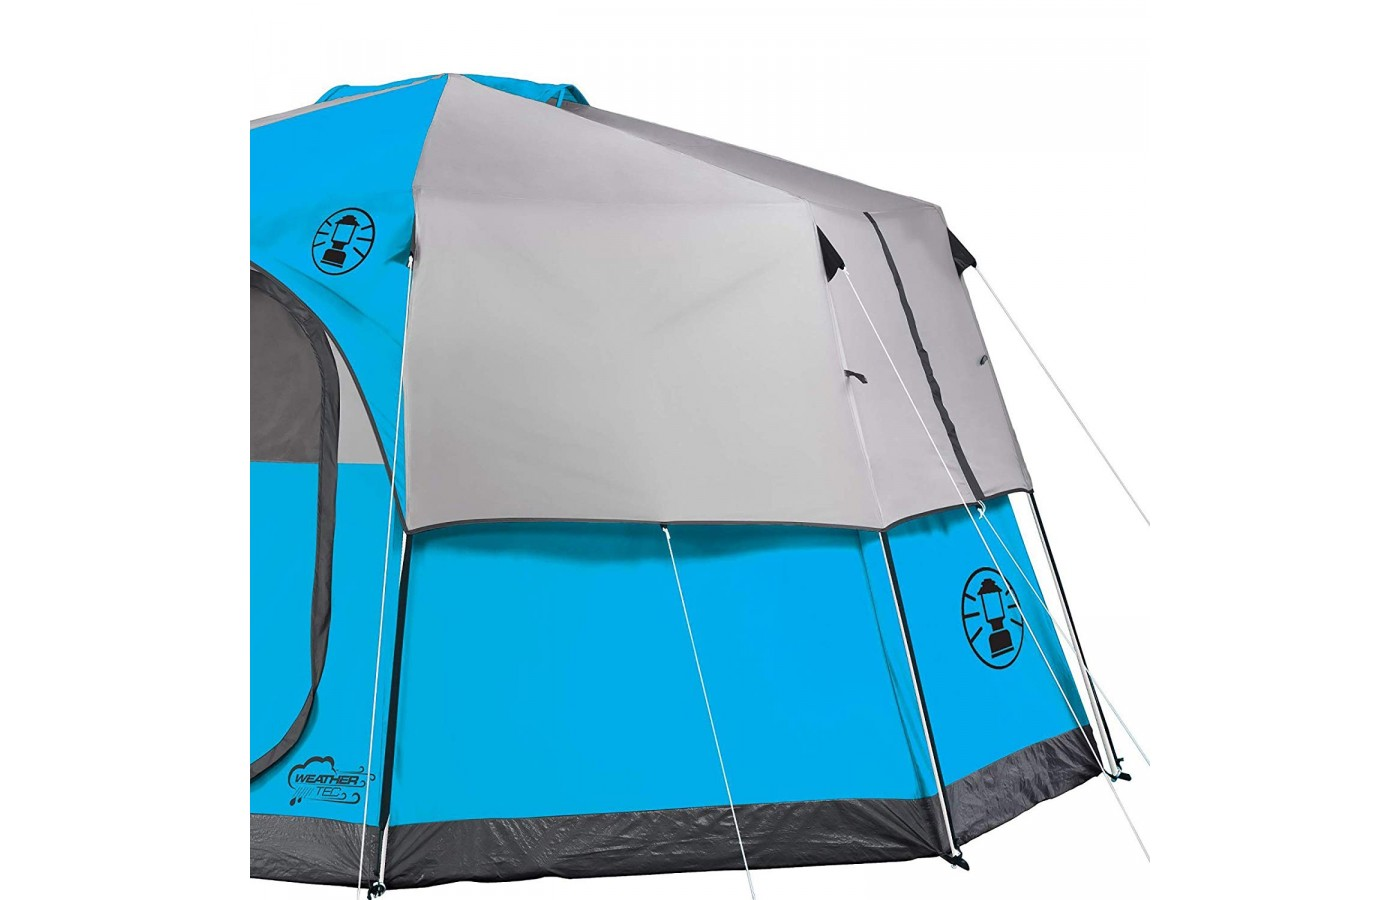 The Coleman Cortes Octagon 8 is made of a water-proof polyester to protect against rain and wind.